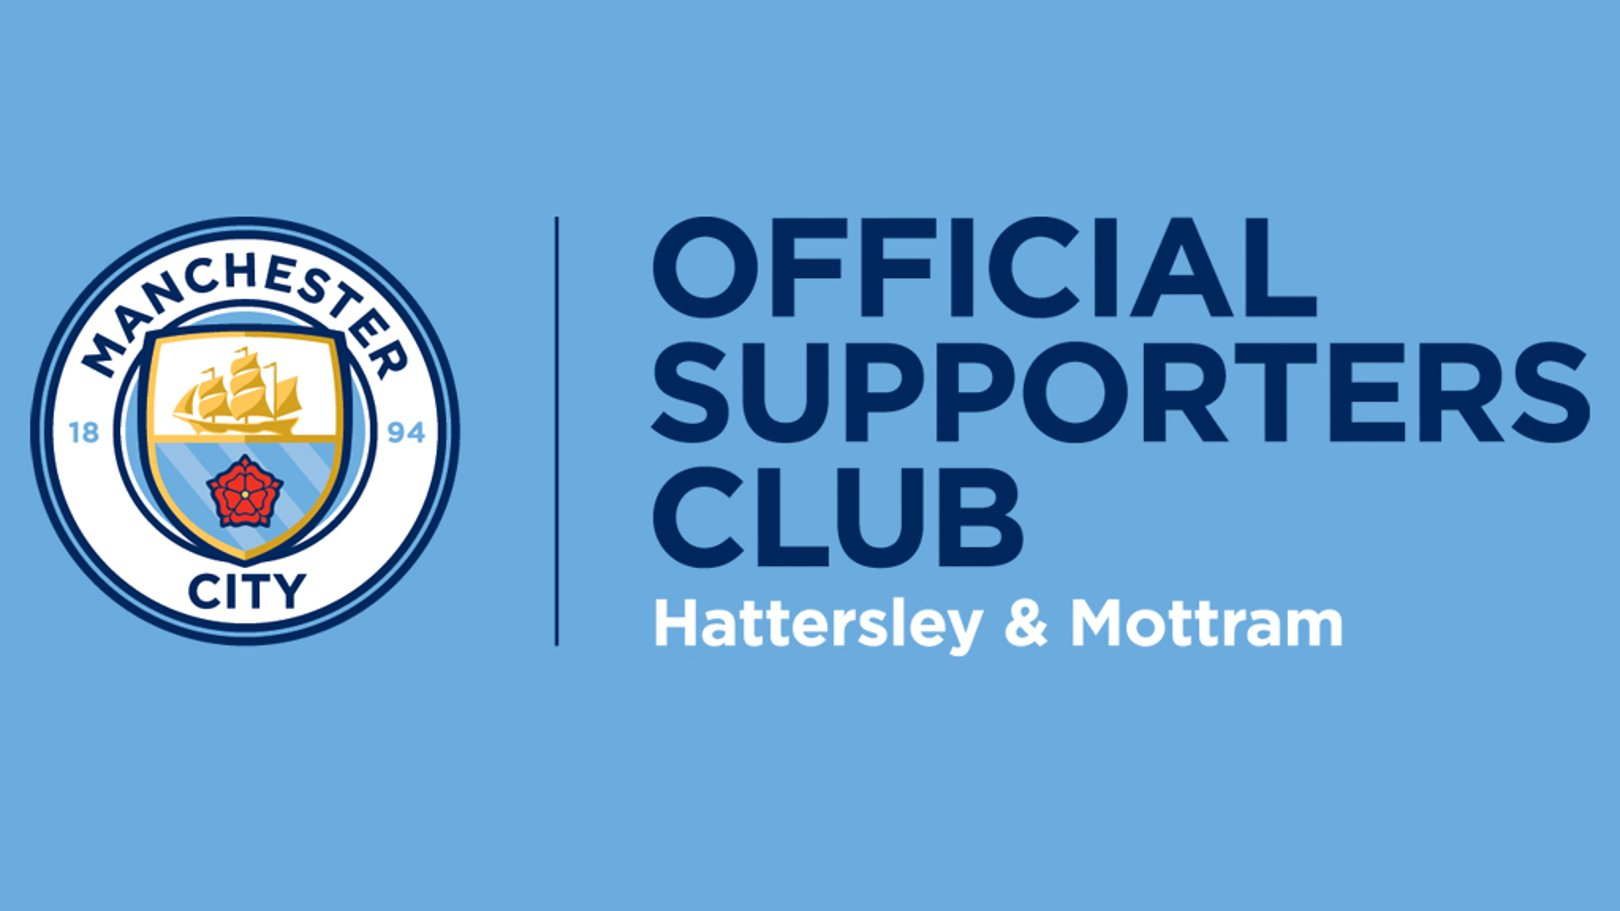 Hattersley and Mottram join Official Supporters Club family